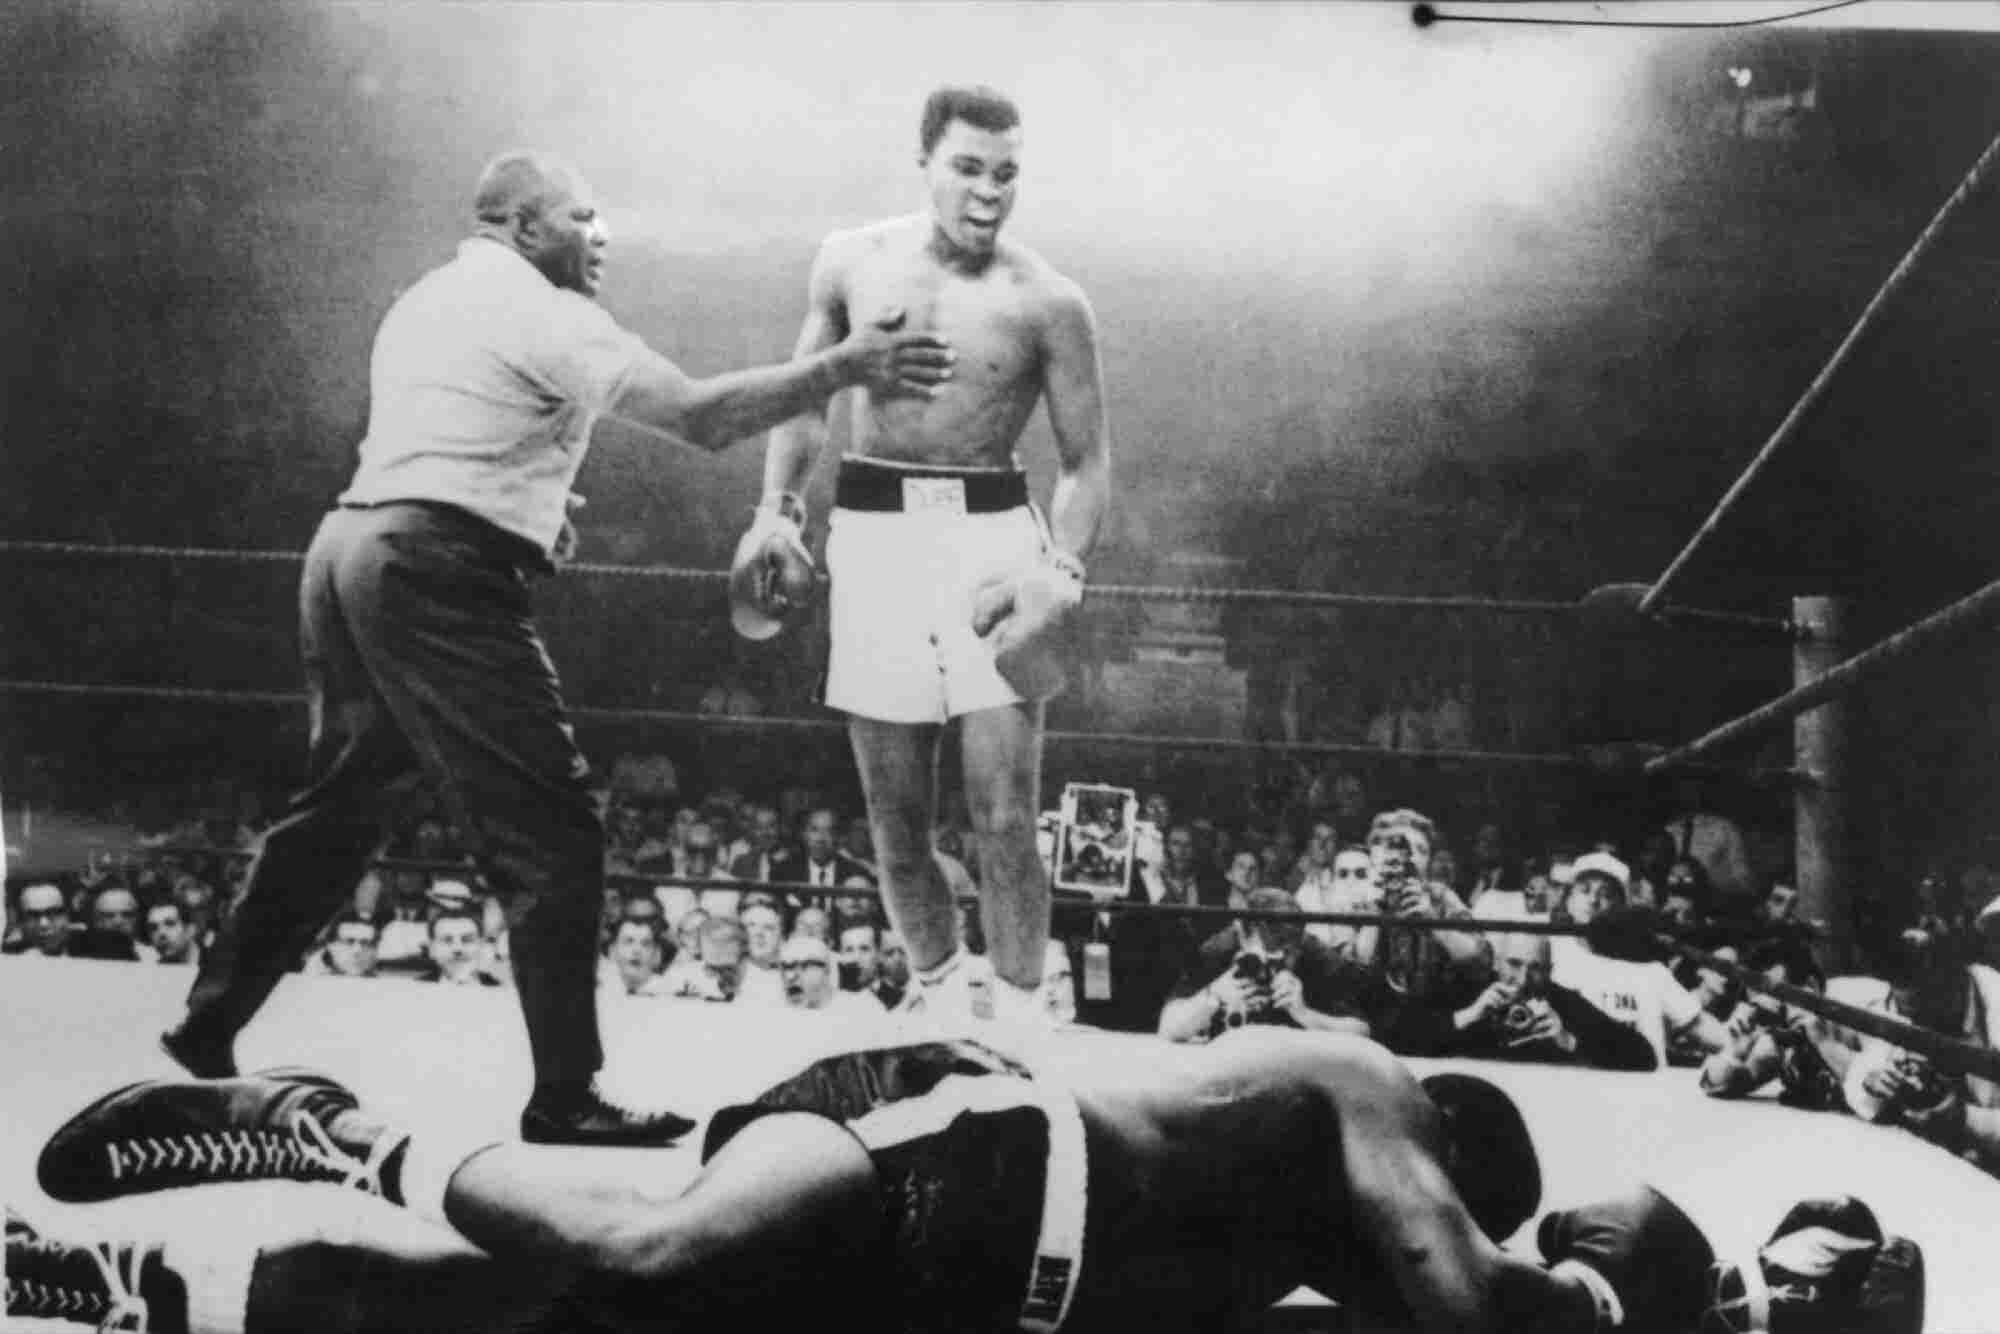 The World Reacts on Social Media to Muhammad Ali's Death